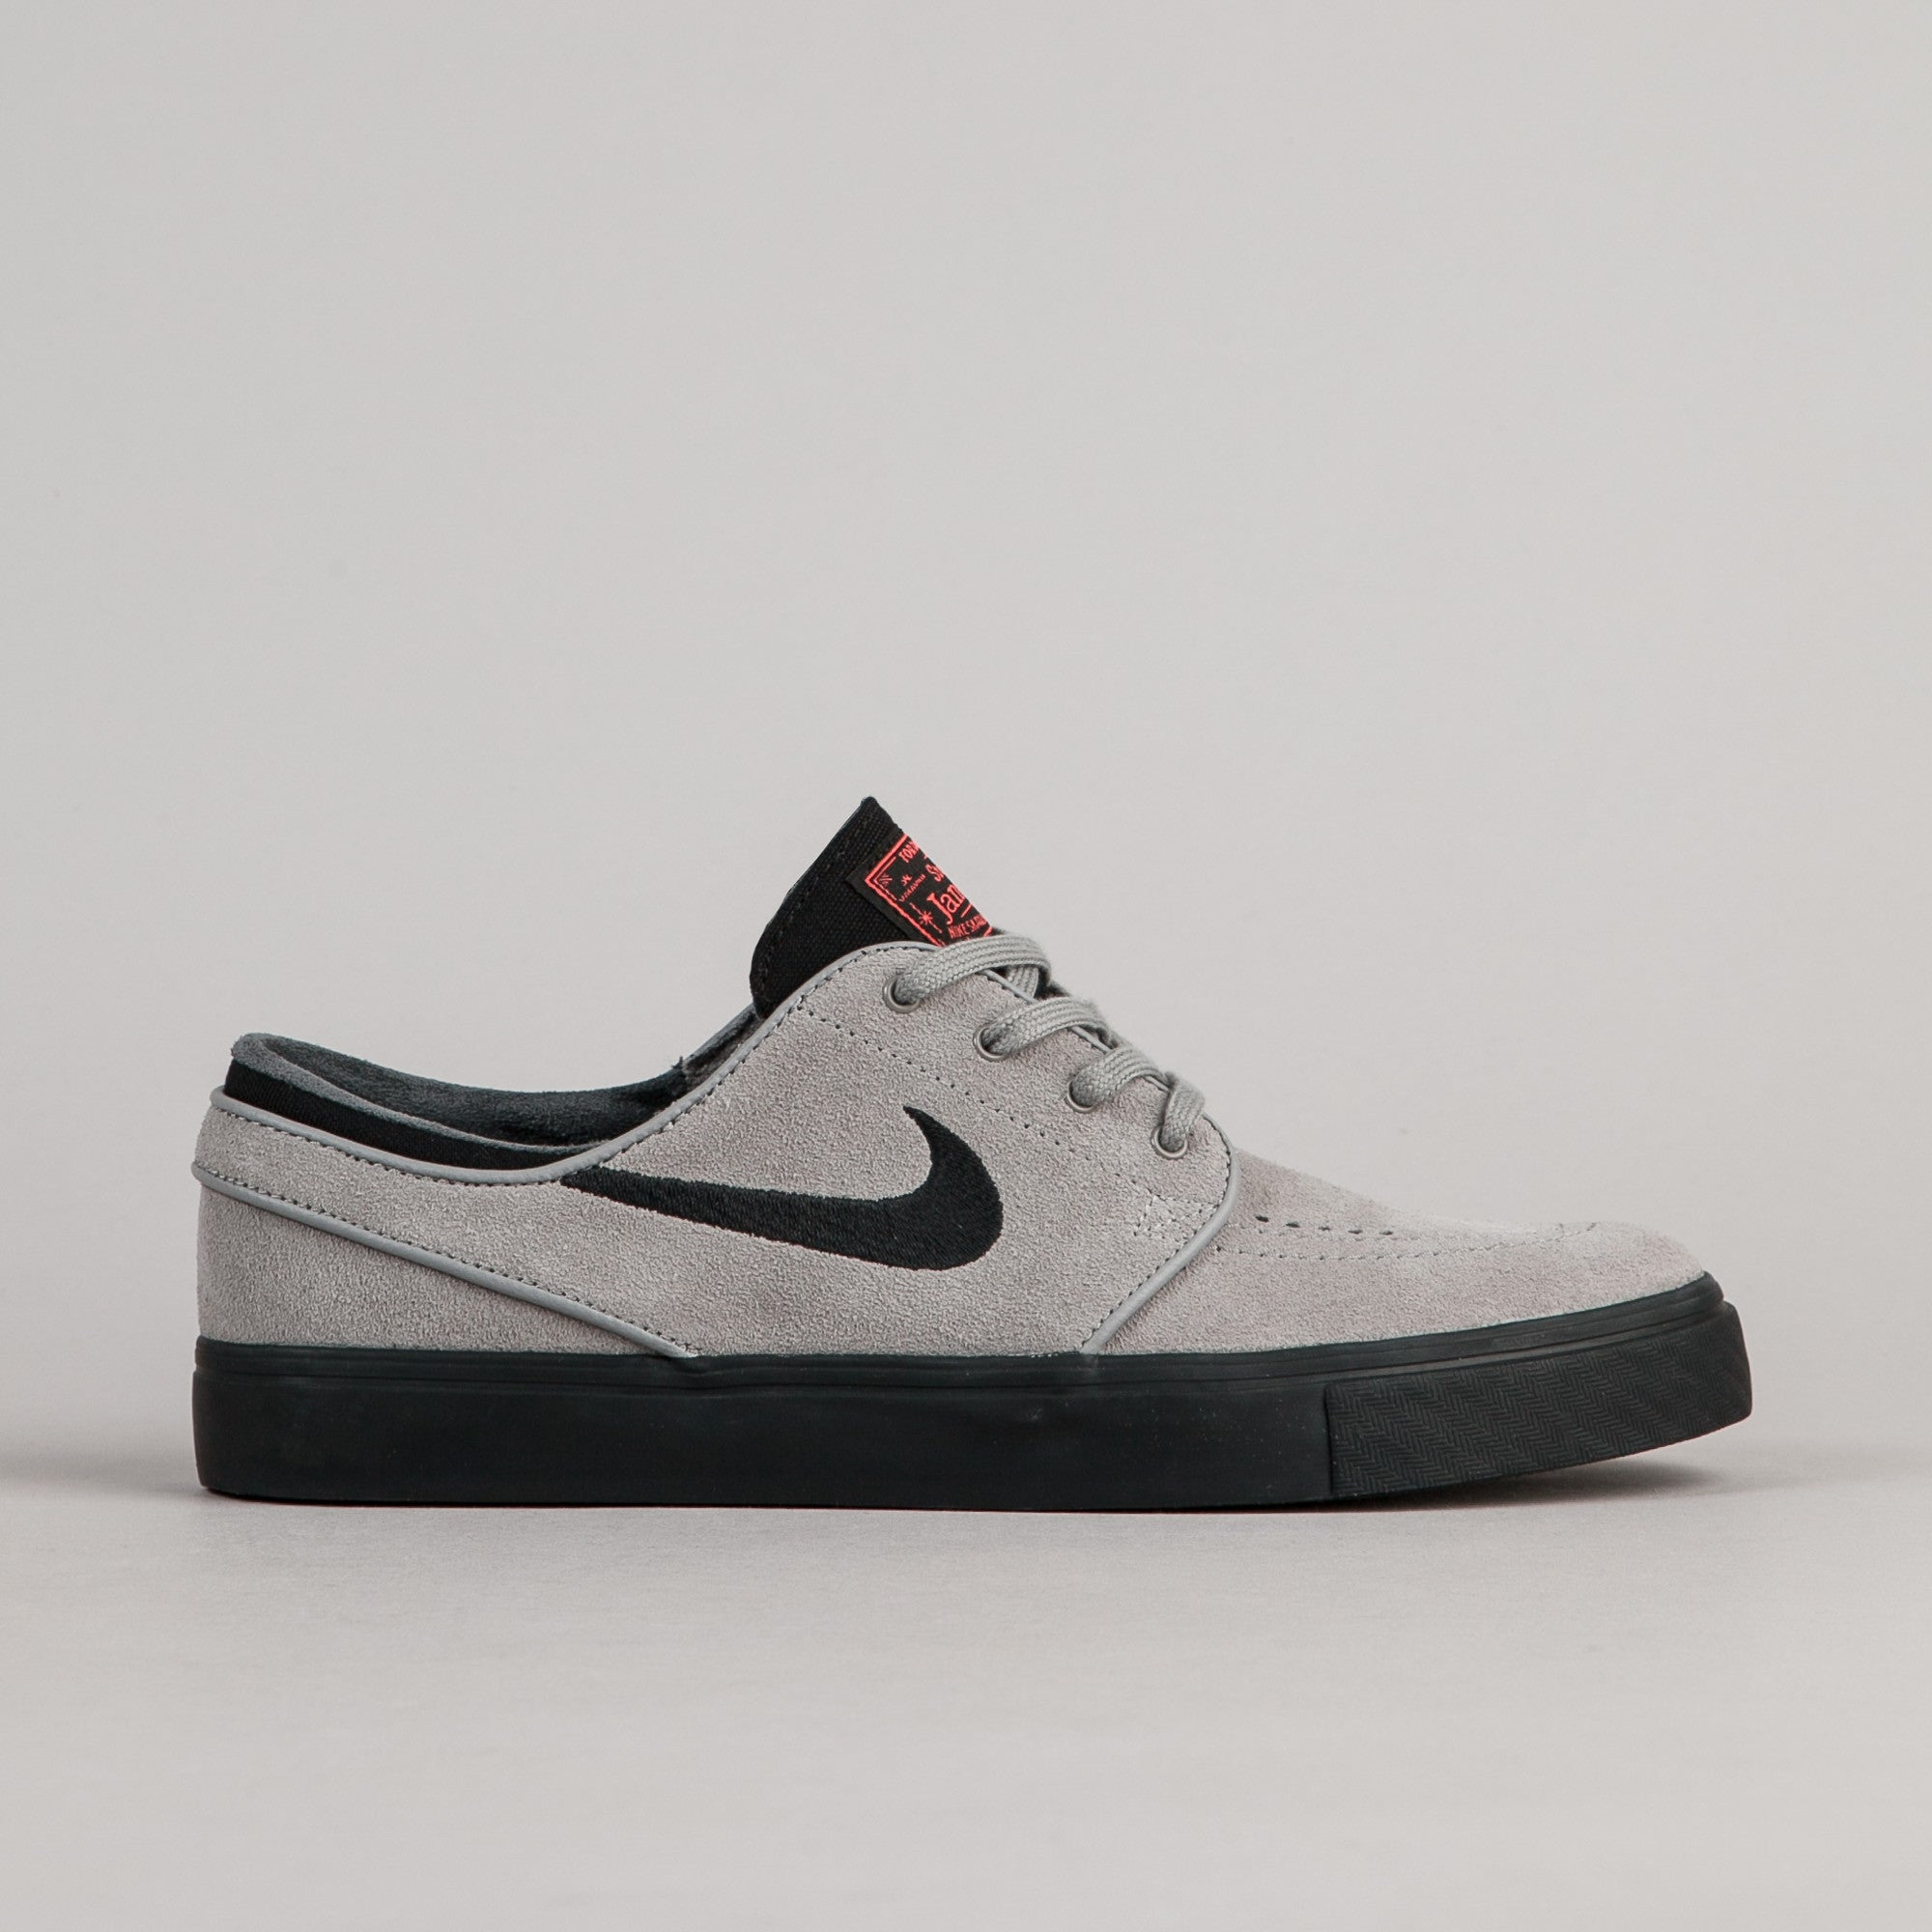 Nike SB Stefan Janoski Shoes - Dust / Black - Ember Glow - White